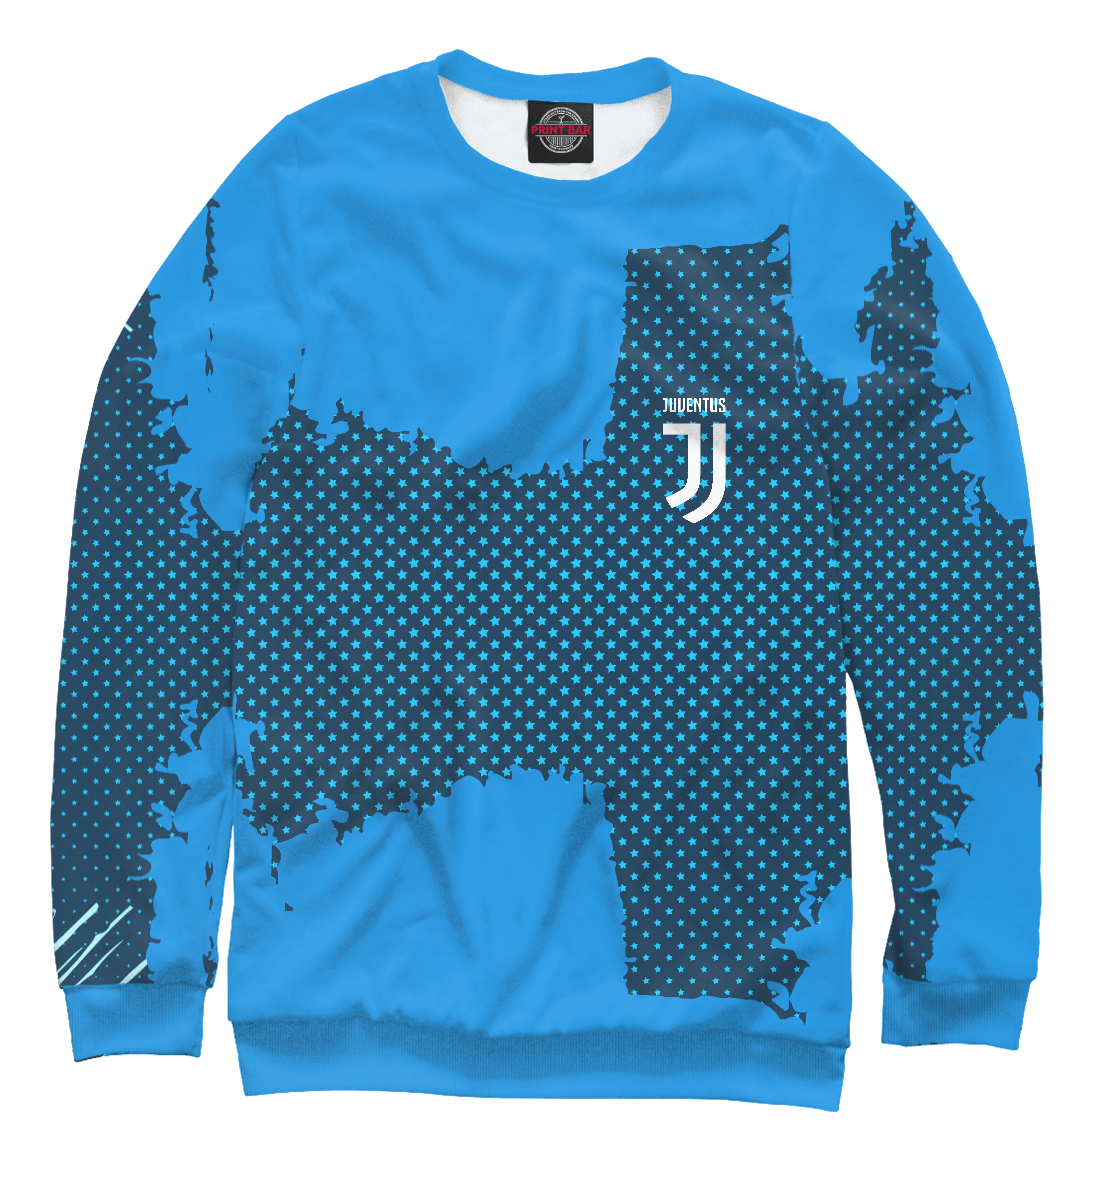 Купить Juventus sport collection, Printbar, Свитшоты, FTO-180120-swi-2